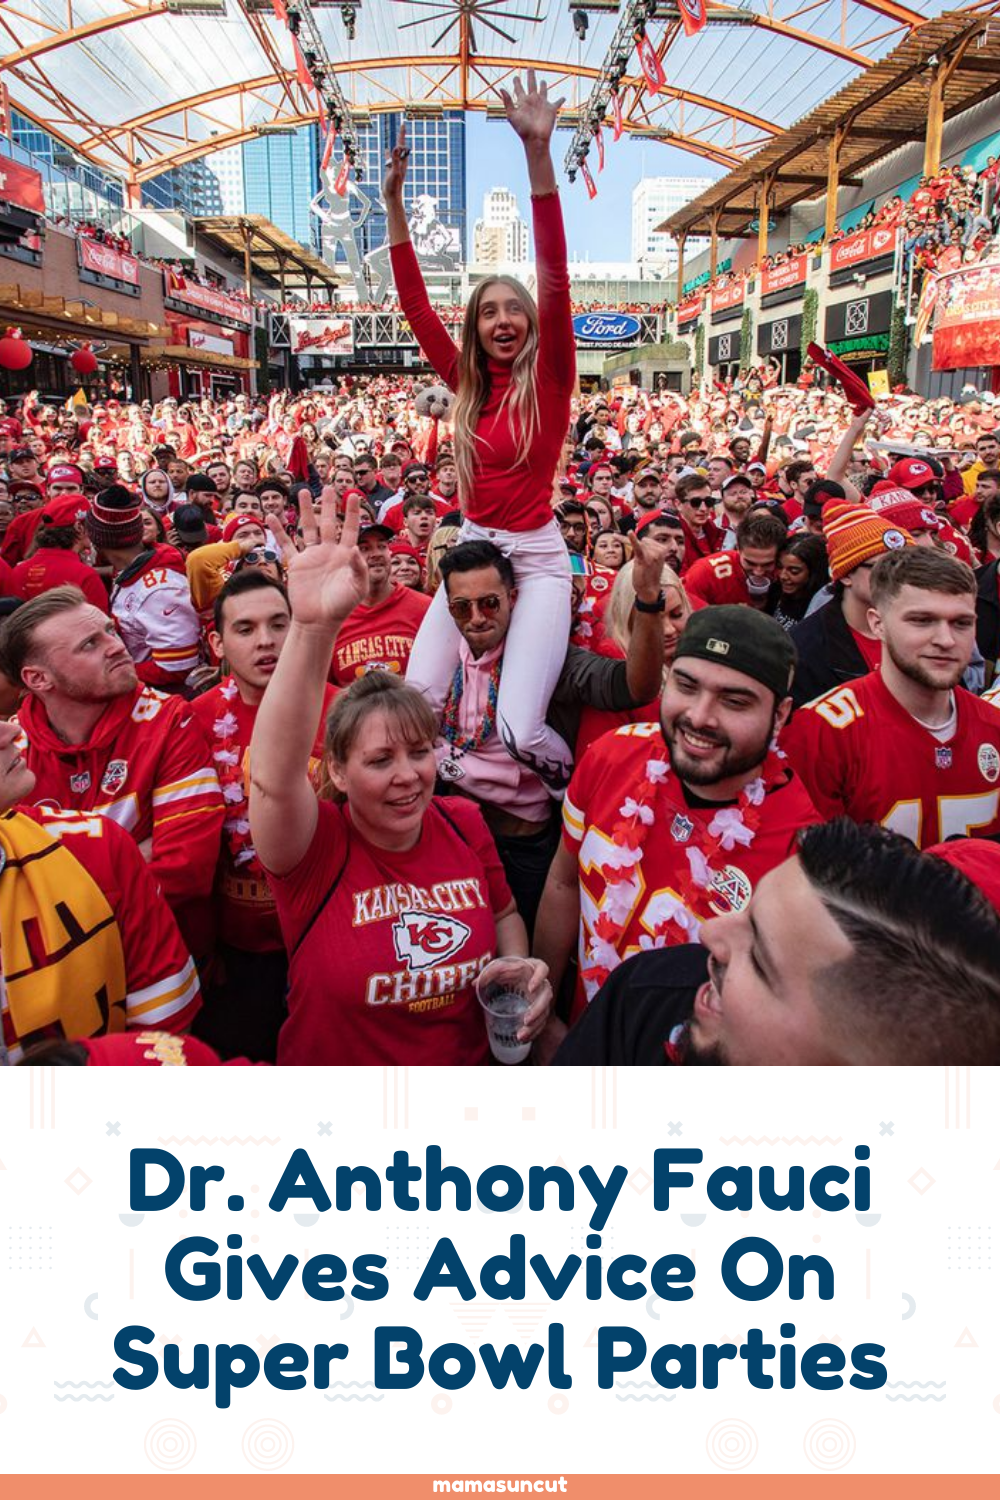 Dr Anthony Fauci Gives Advice On Super Bowl Parties In 2021 Superbowl Party Super Bowl Motivational Memes